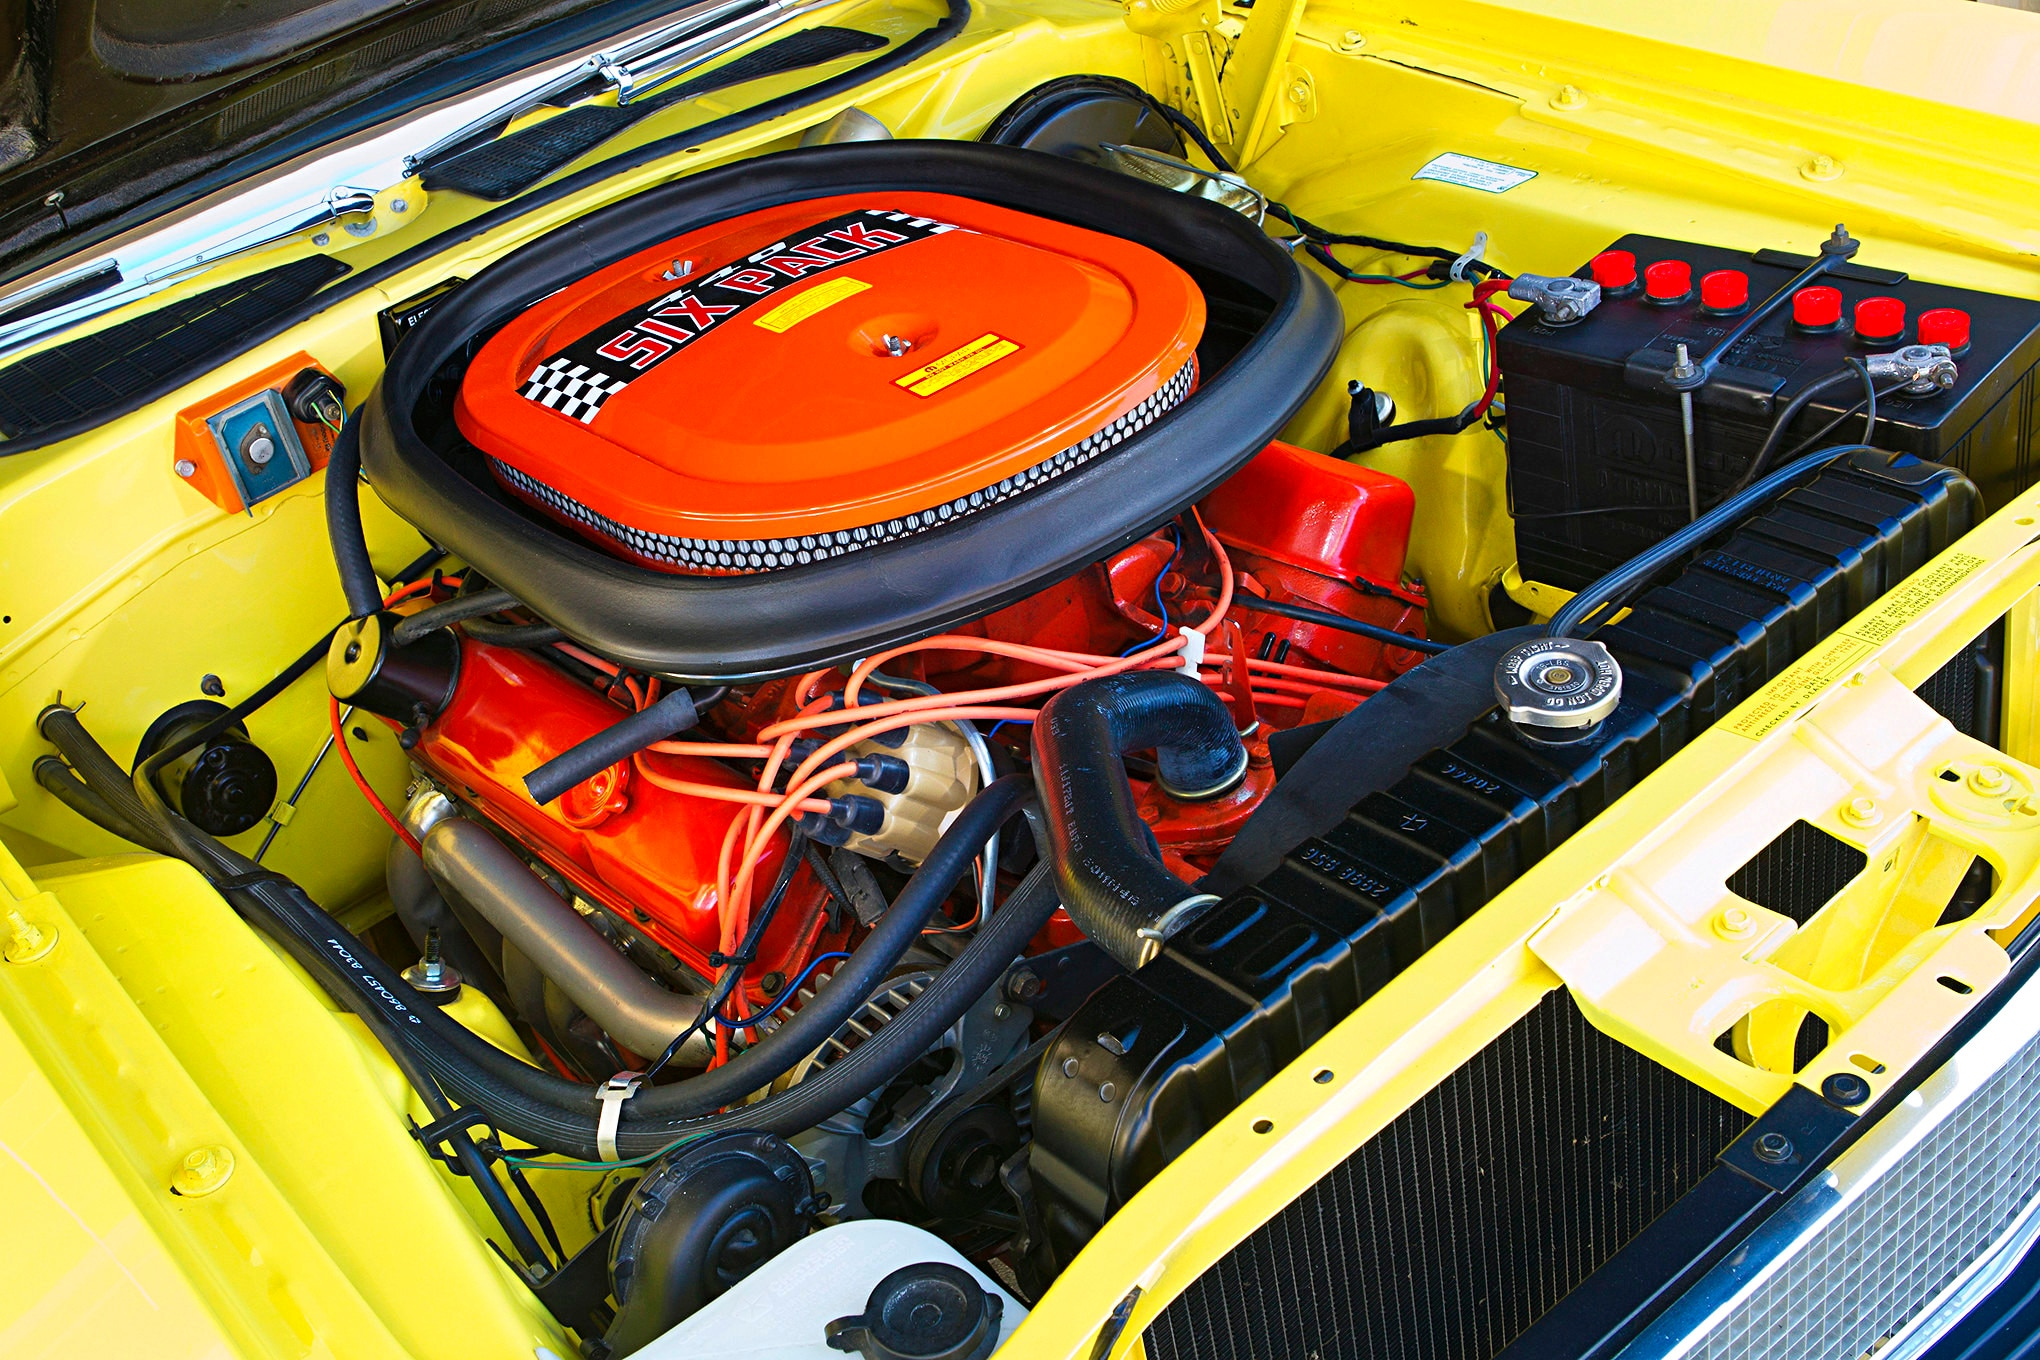 big-block-chrysler-440-1970-challenger